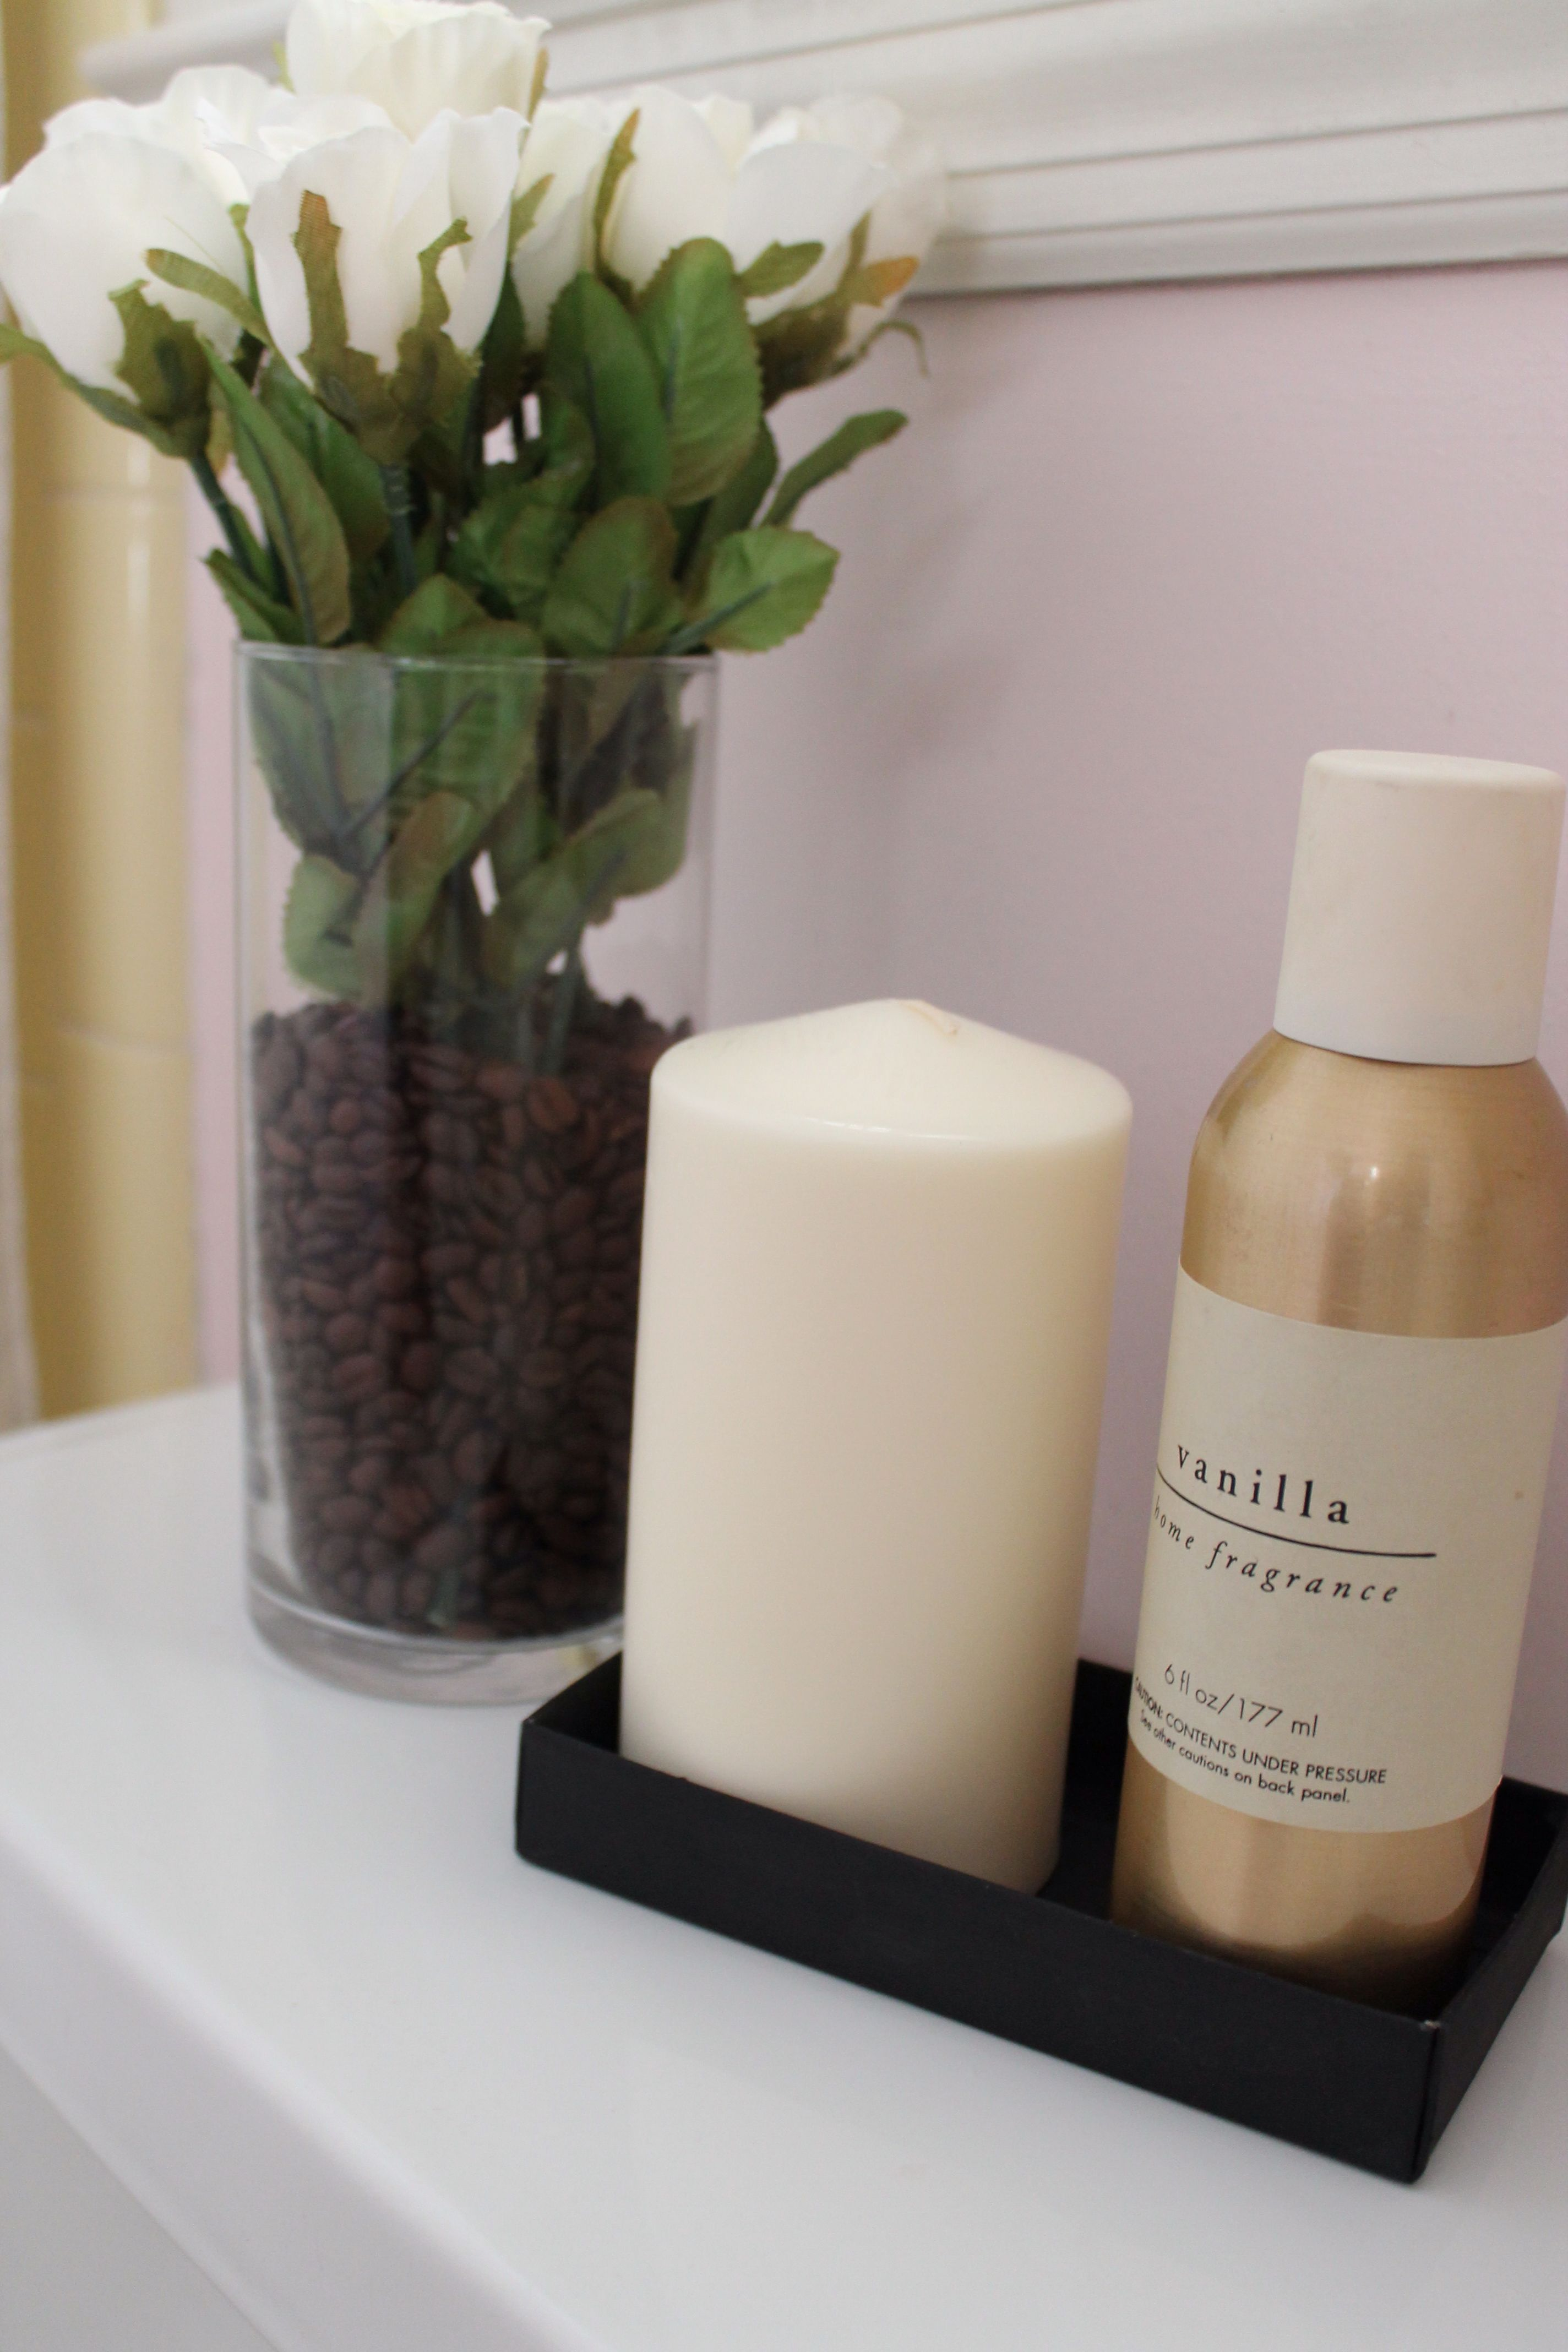 Coffee beans in the bathroom. Spray paint any little box & fill it with candle & spray!